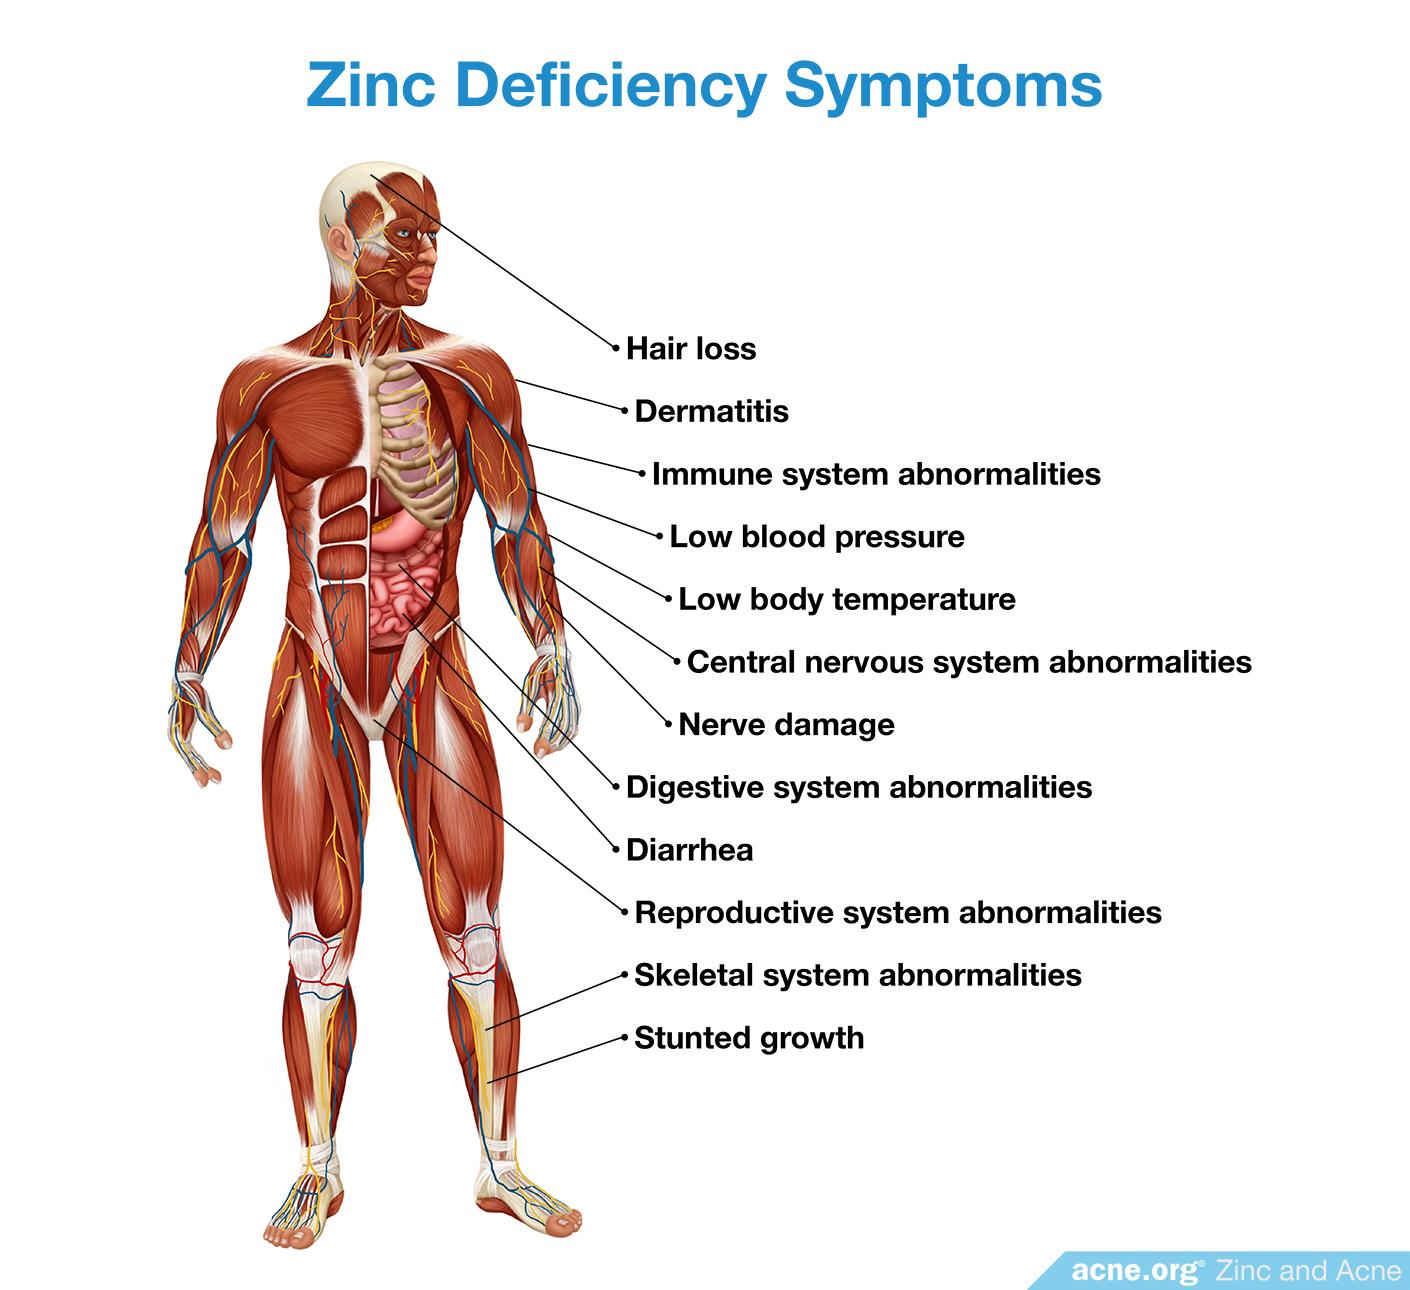 Zinc Deficiency Symptoms